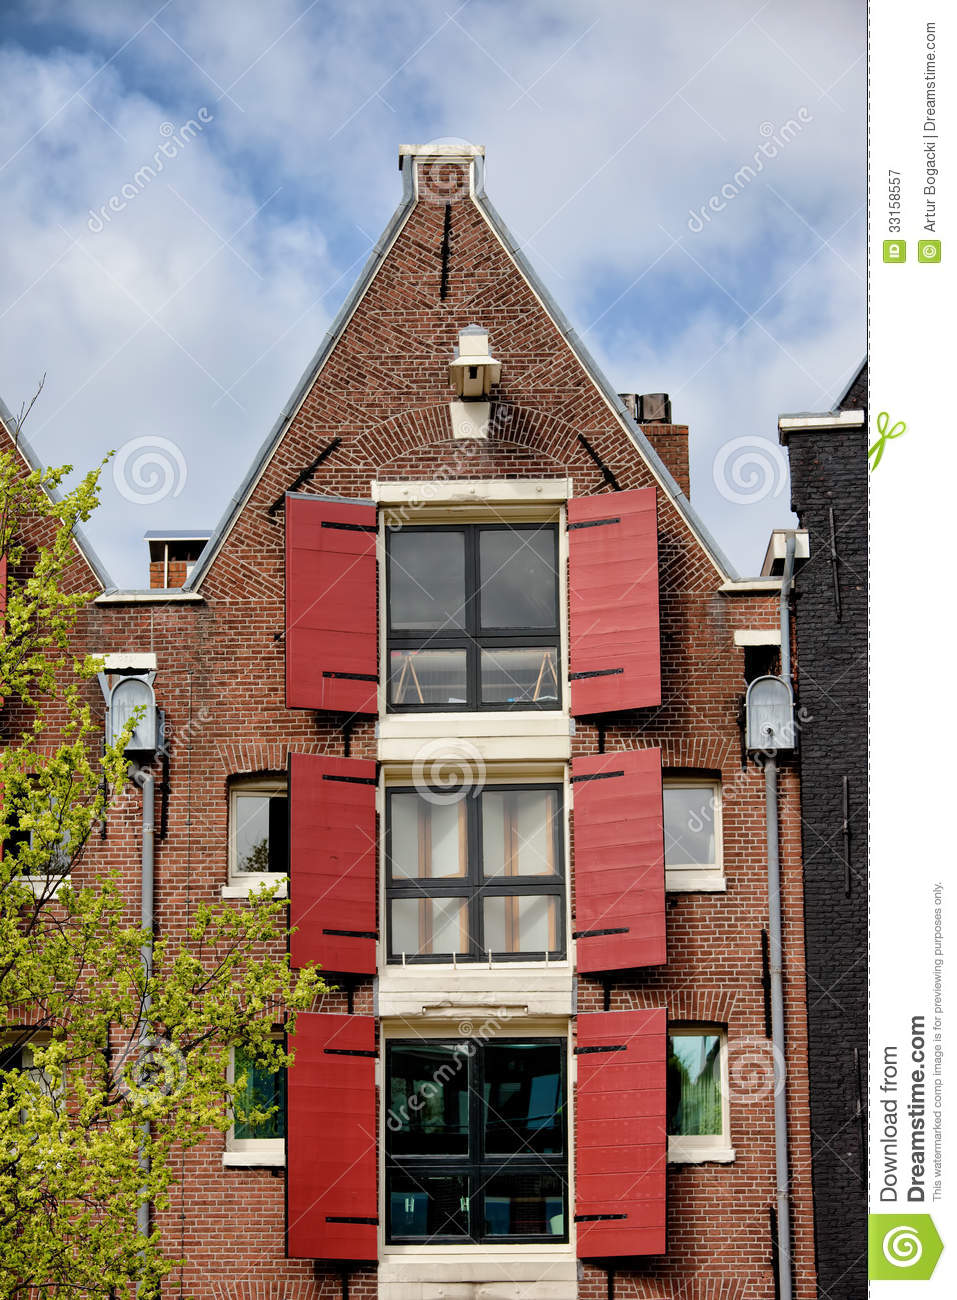 Old house in amsterdam with triangular gable royalty free for Classic house builders